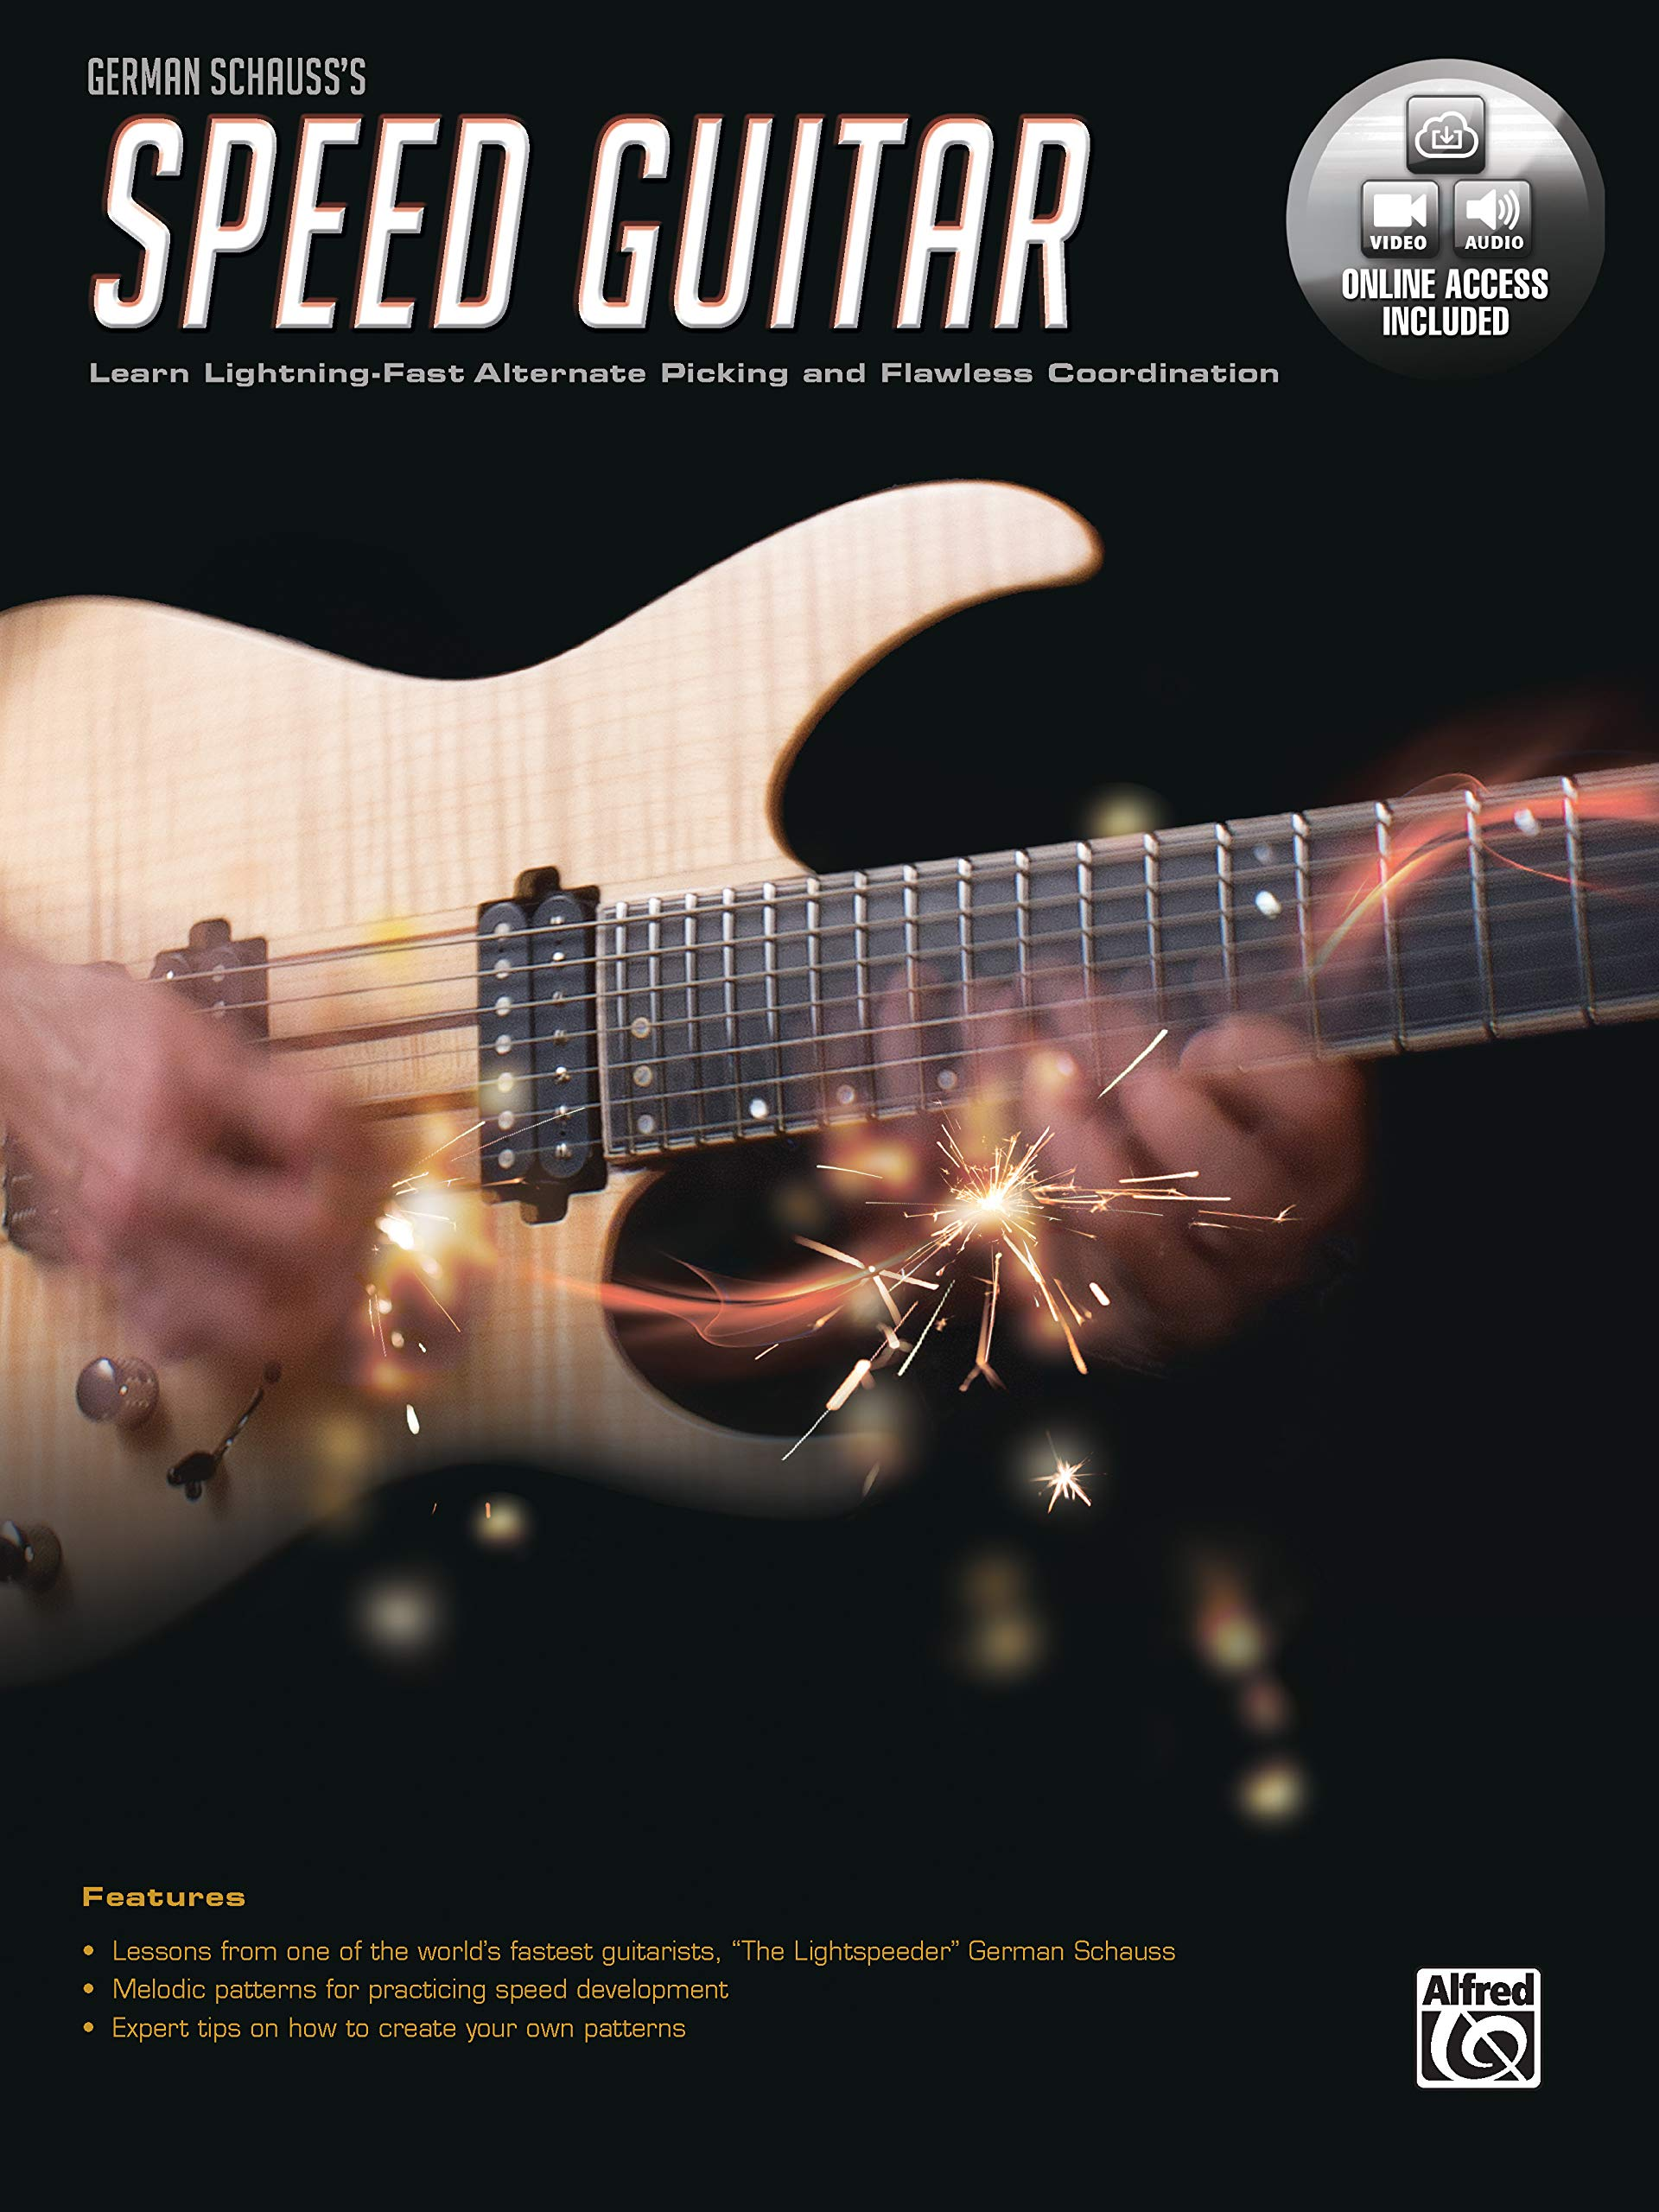 German Schausss Speed Guitar: Learn Lightning Fast Alternate Picking and Coordination, Book & Online Audio & Video: Amazon.es: German Schauss: Libros en ...